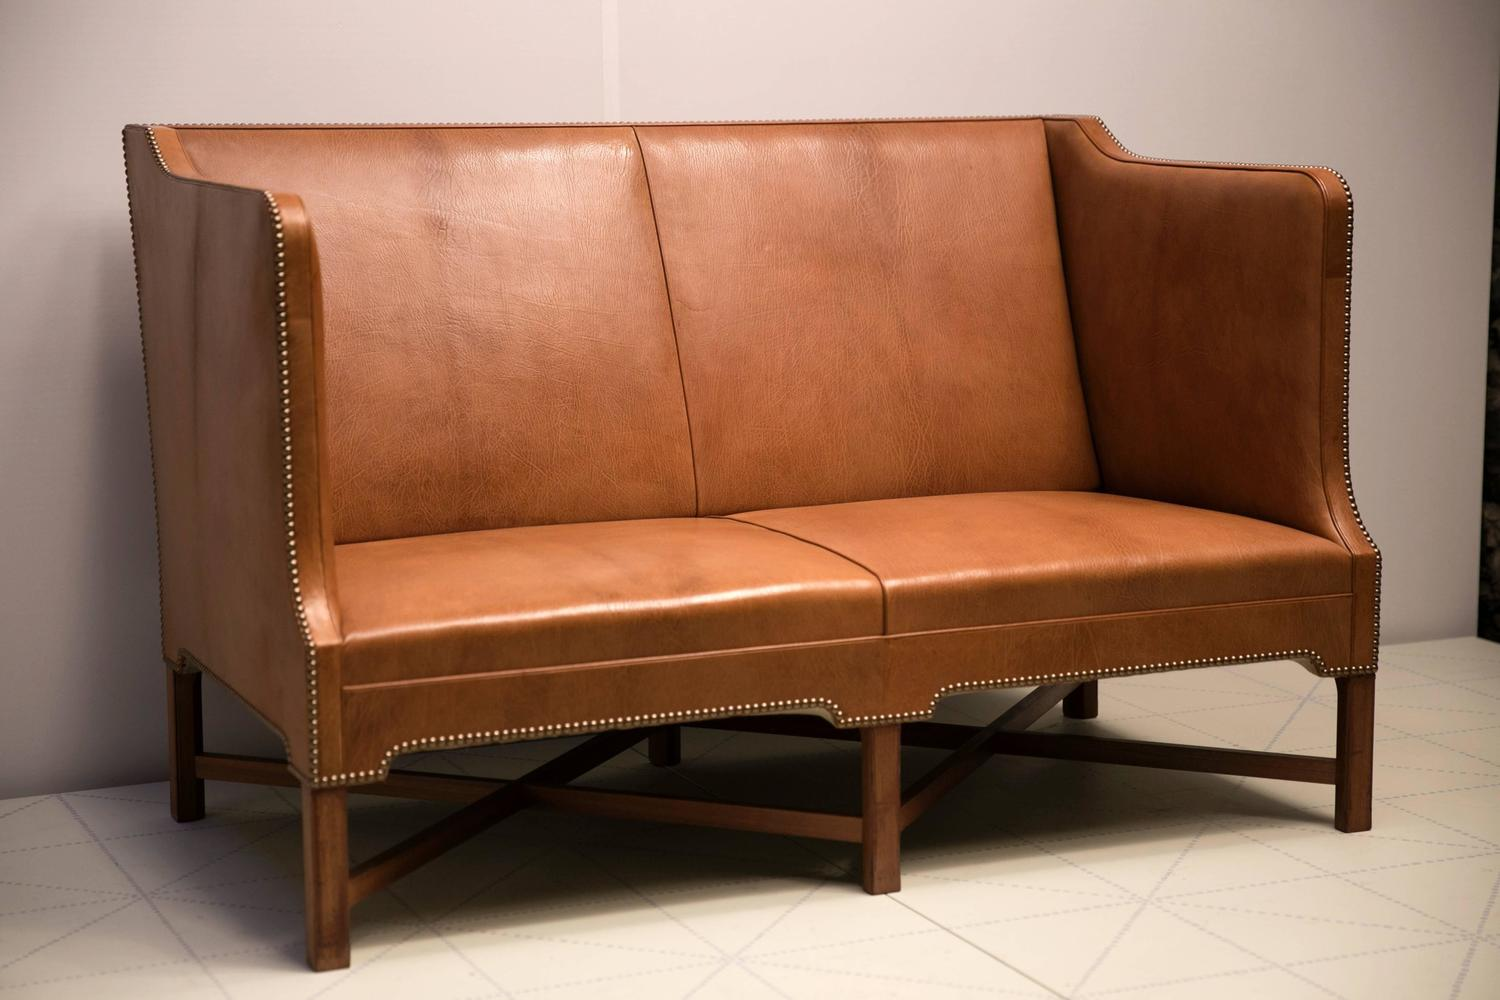 two person recliner chair office gas lift cylinder replacement 2 1 sofa in nigerian goatskin on cuban mahogany